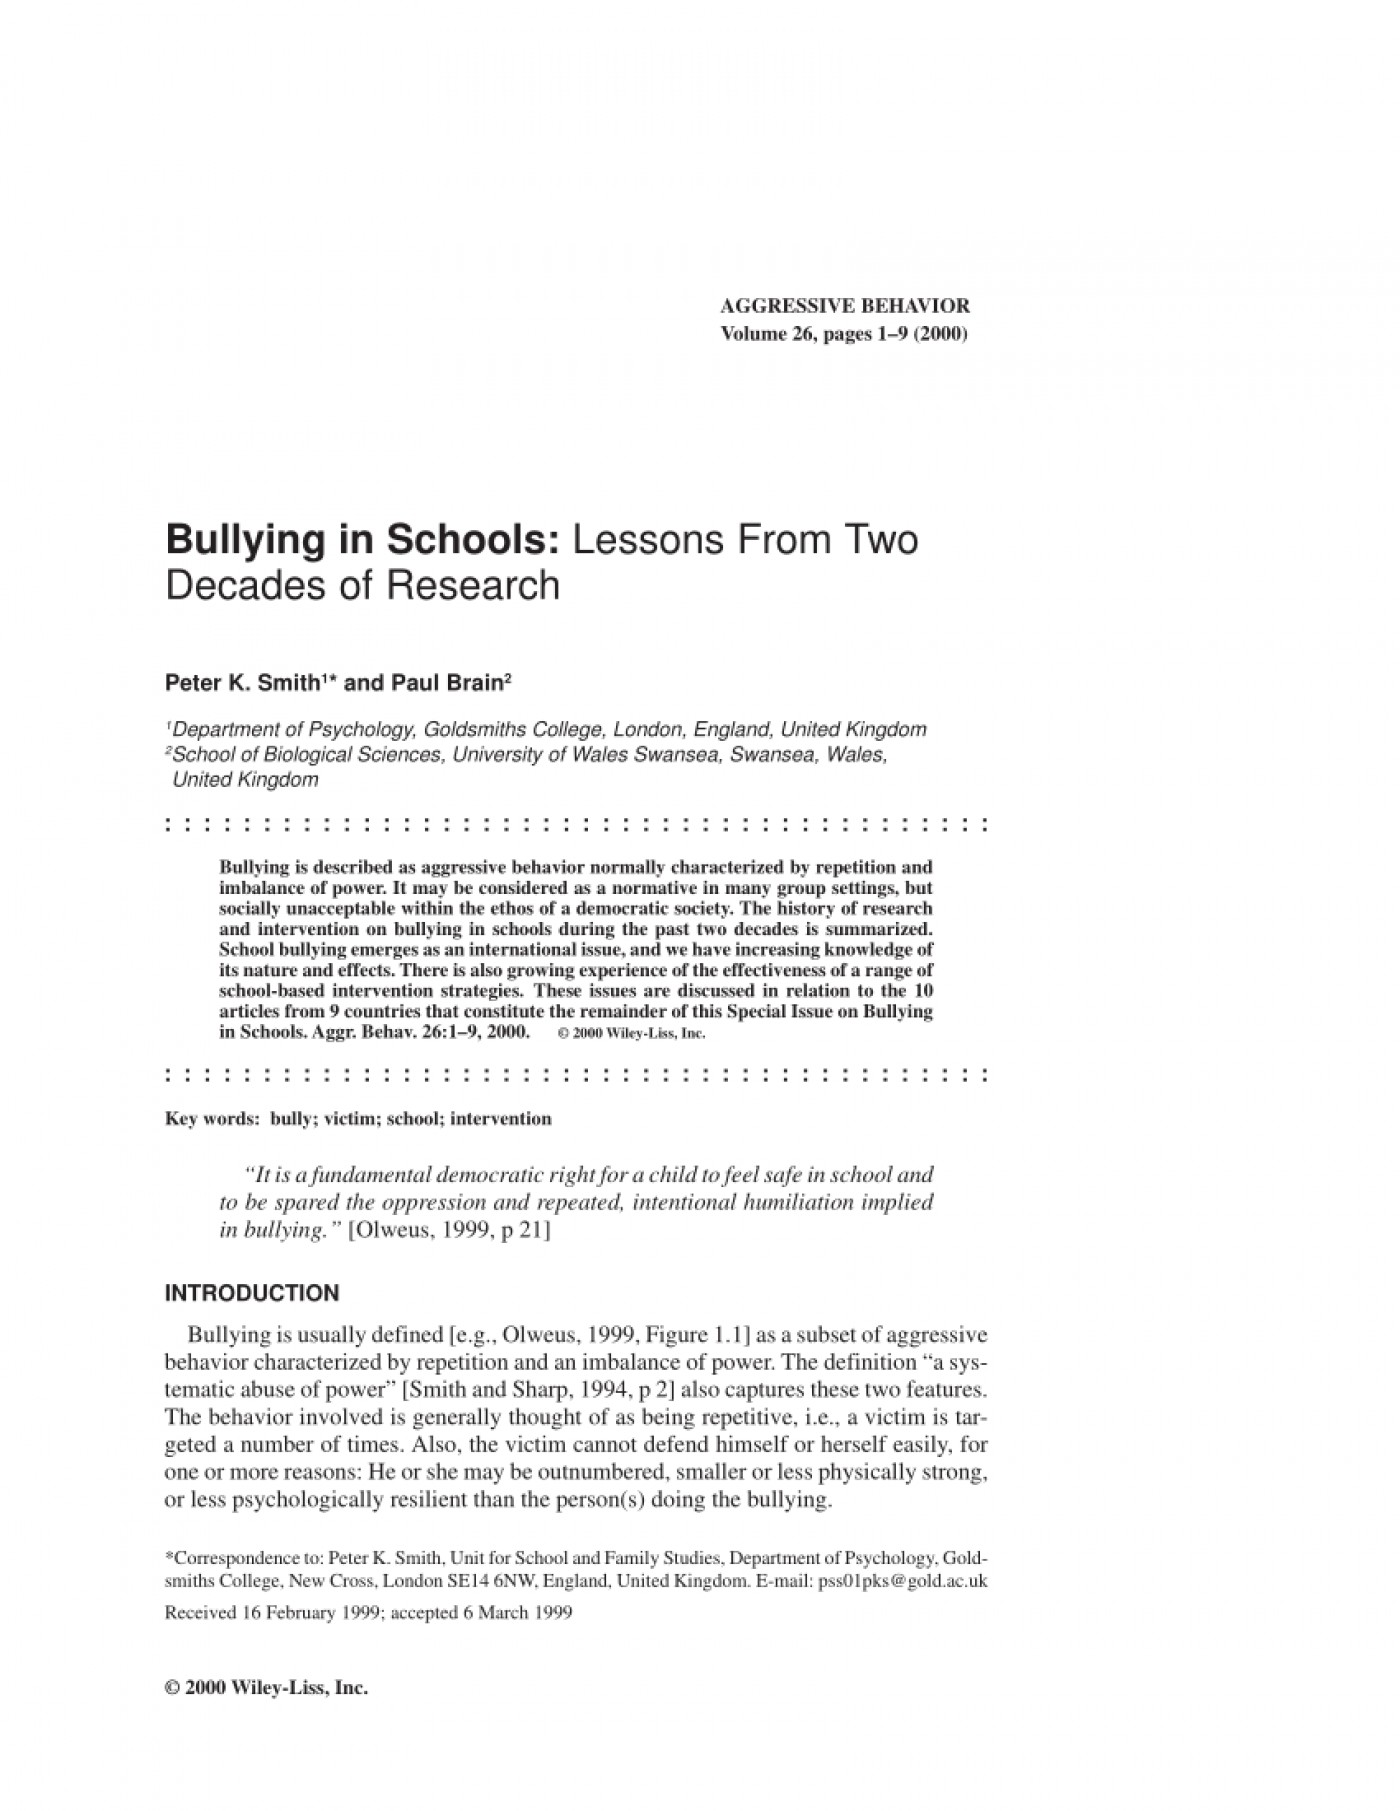 007 Research Paper Largepreview Bullying Imposing Pdf Short About Quantitative Effects Of 1400